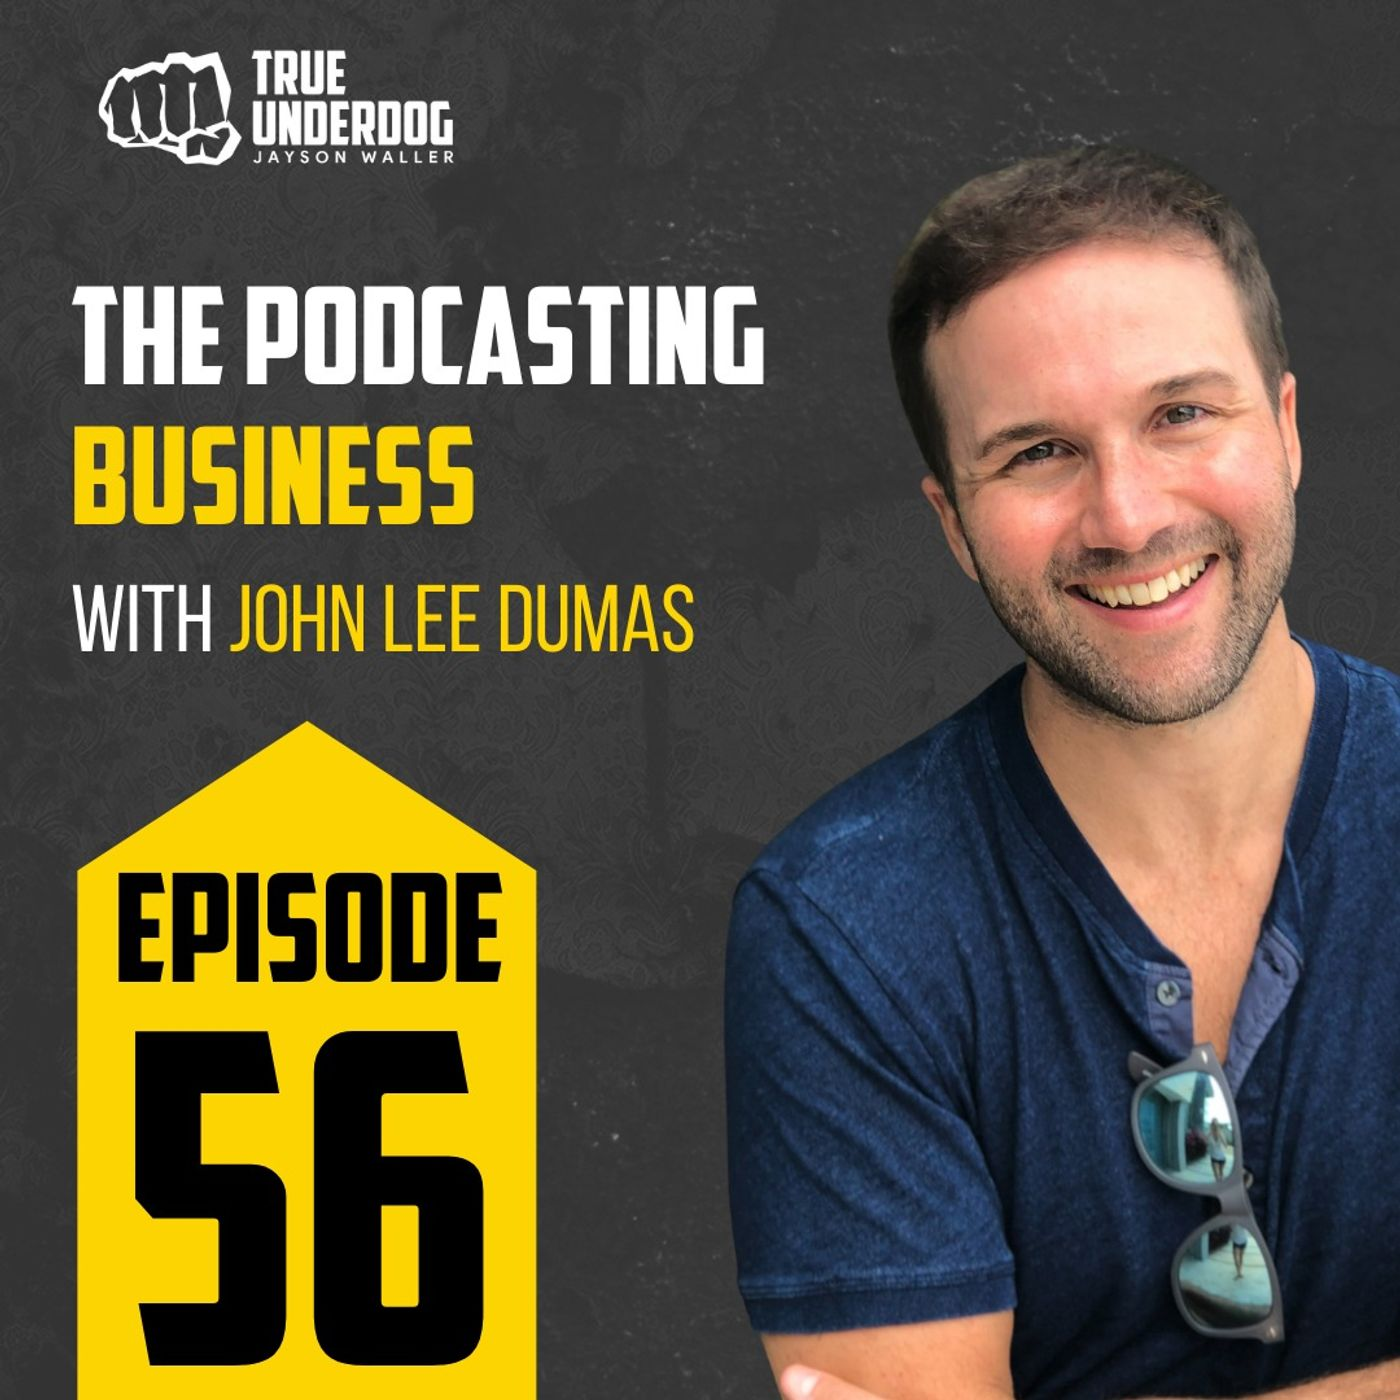 #56: The Podcasting Business with John Lee Dumas